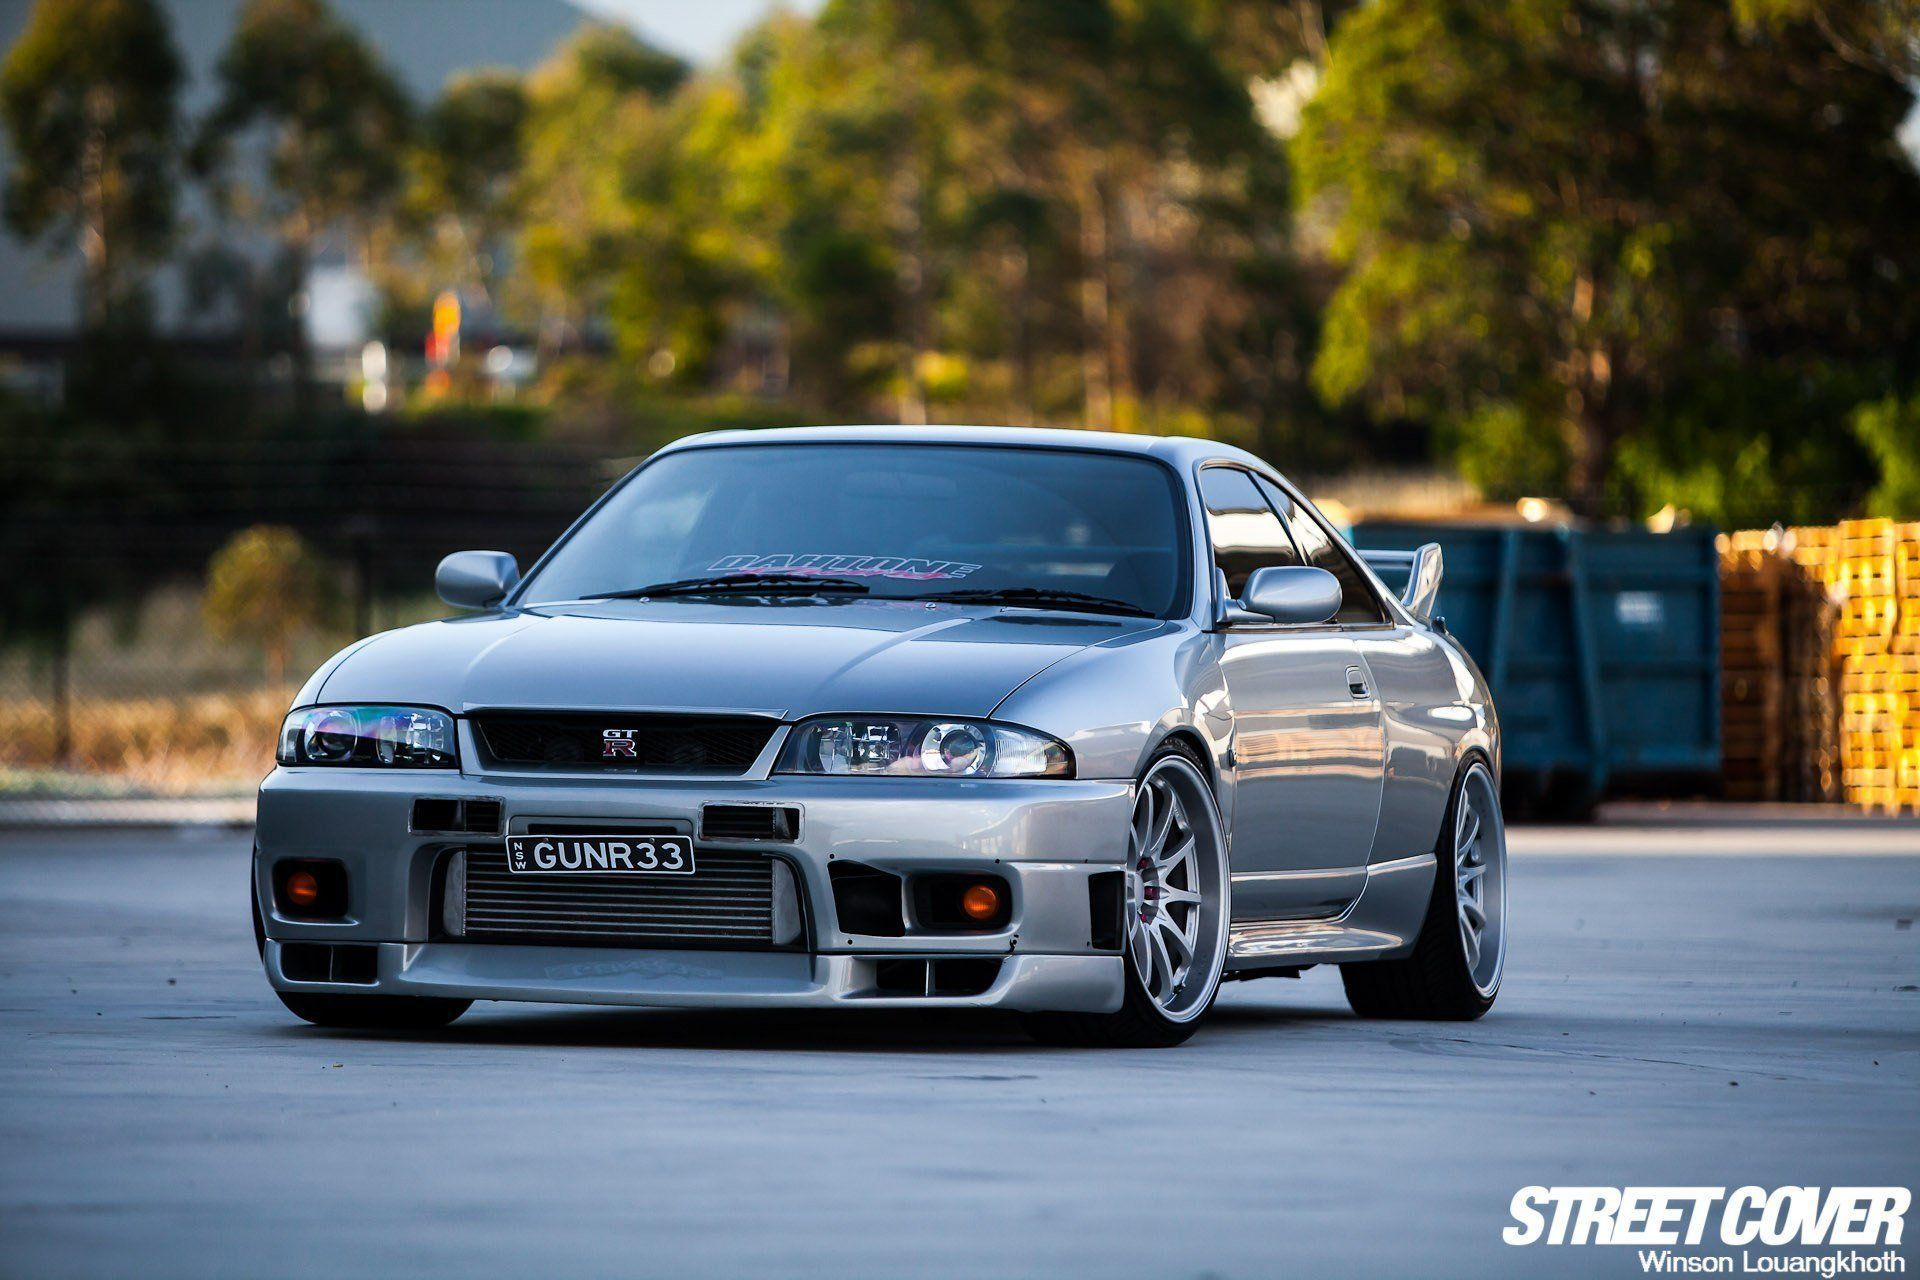 R33 Gtr Wallpapers Top Free R33 Gtr Backgrounds Wallpaperaccess